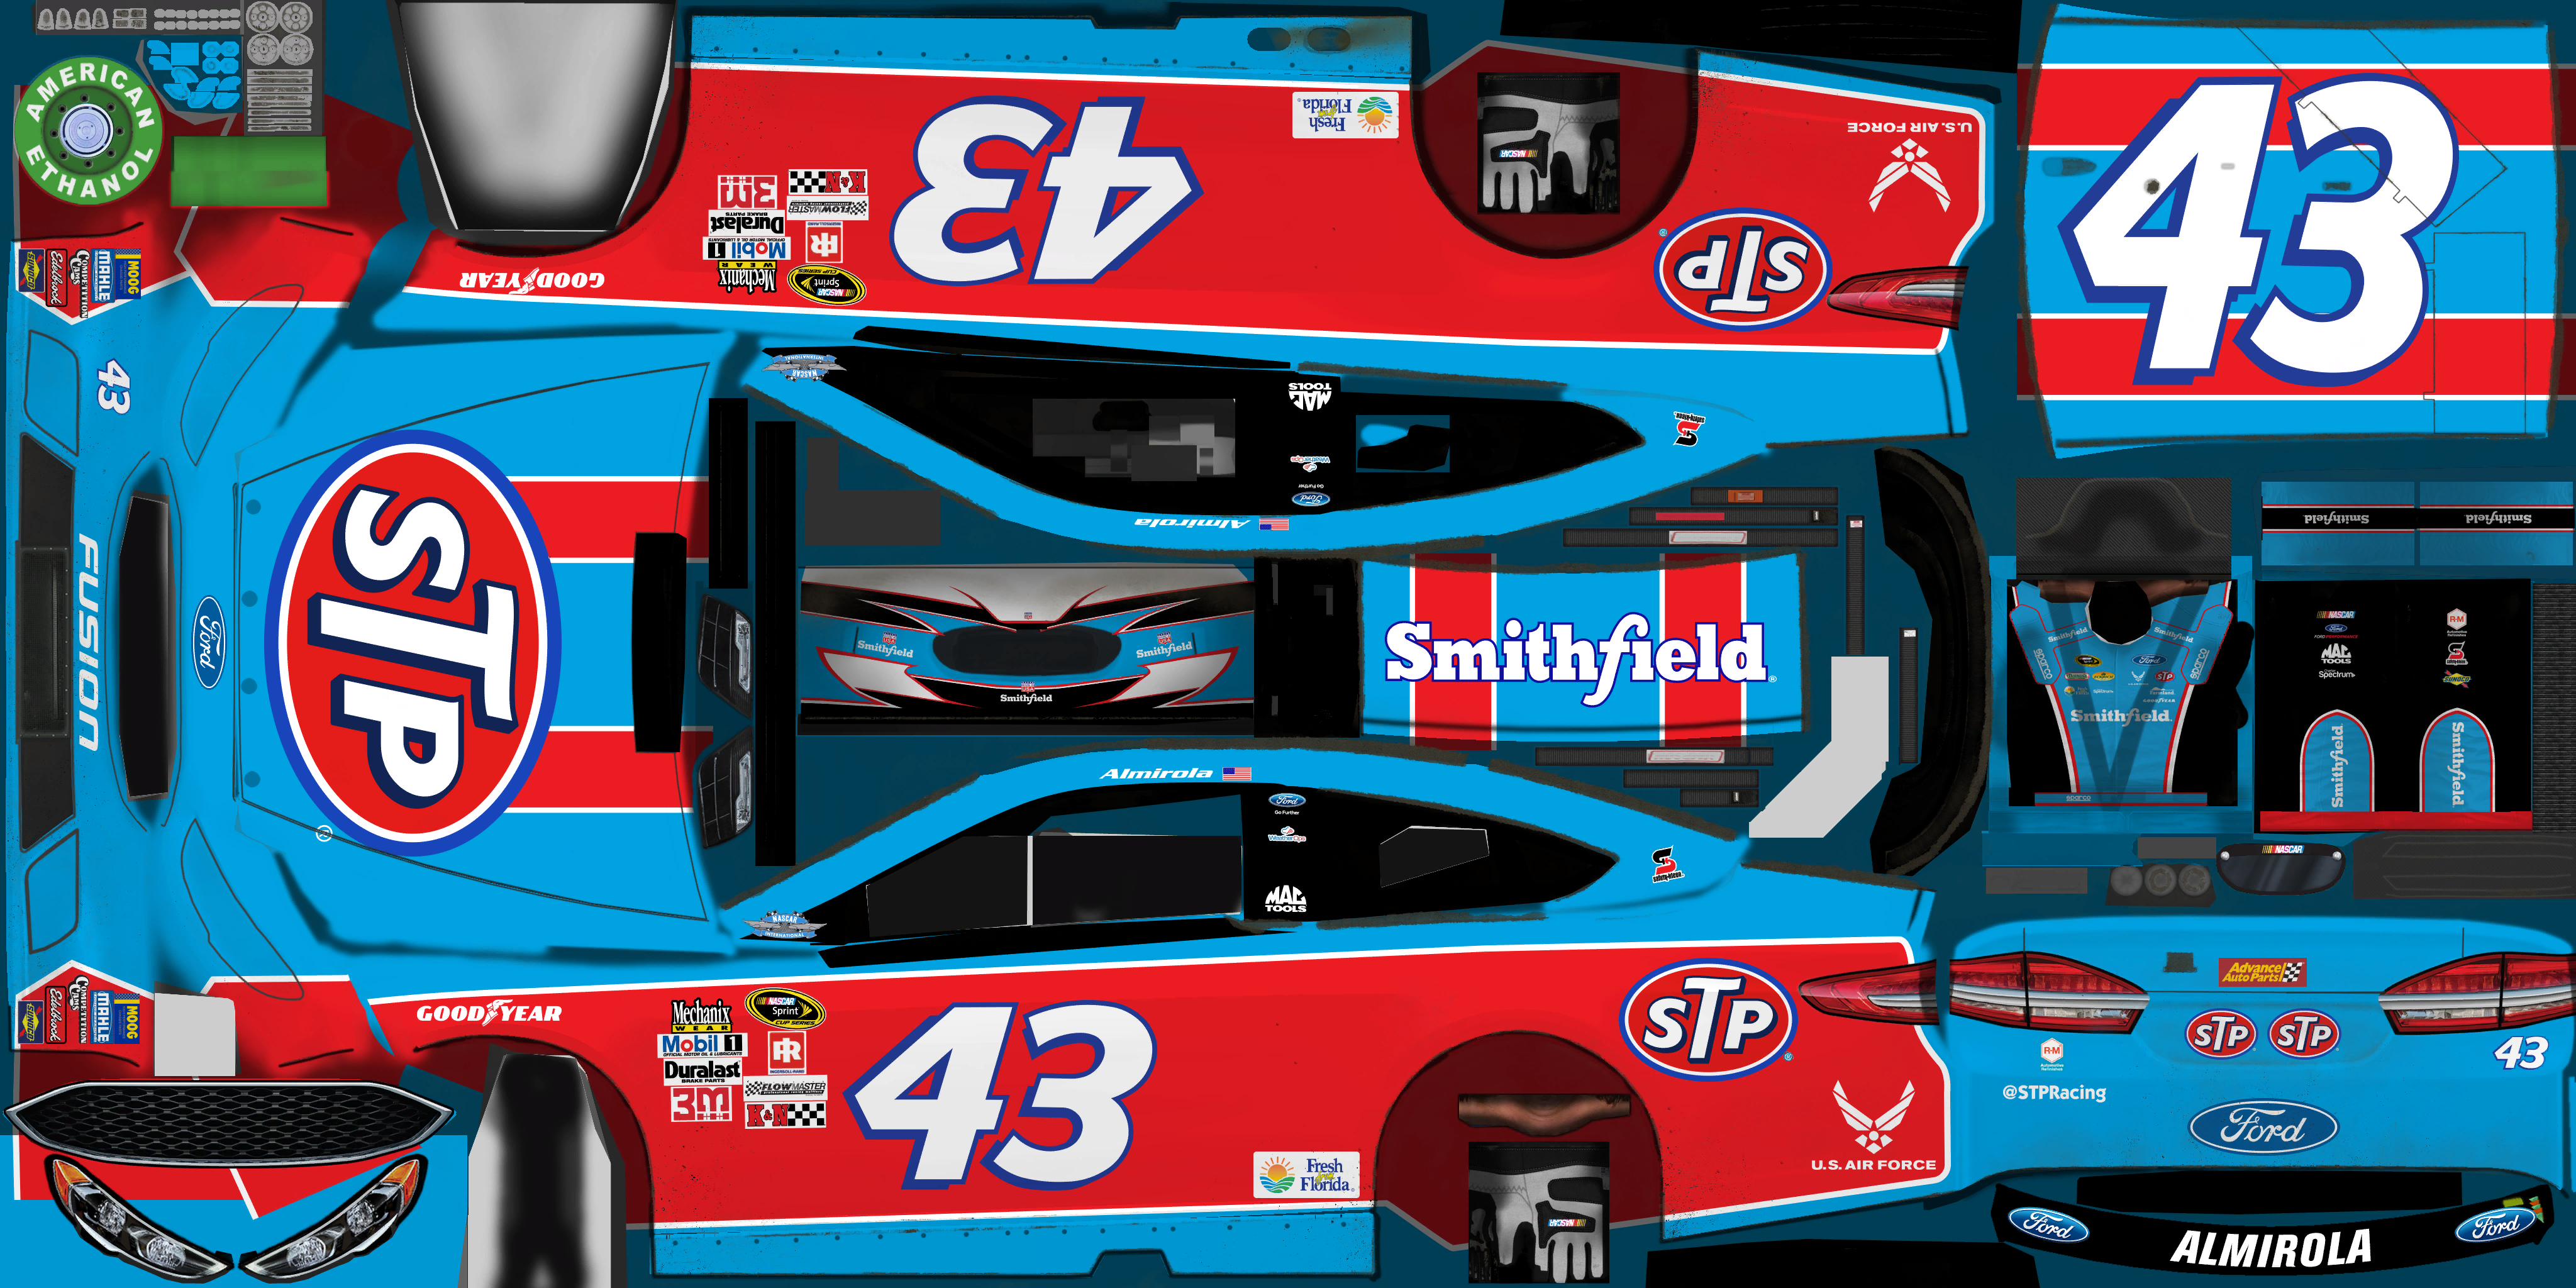 #43 Aric Almirola (STP Throwback)